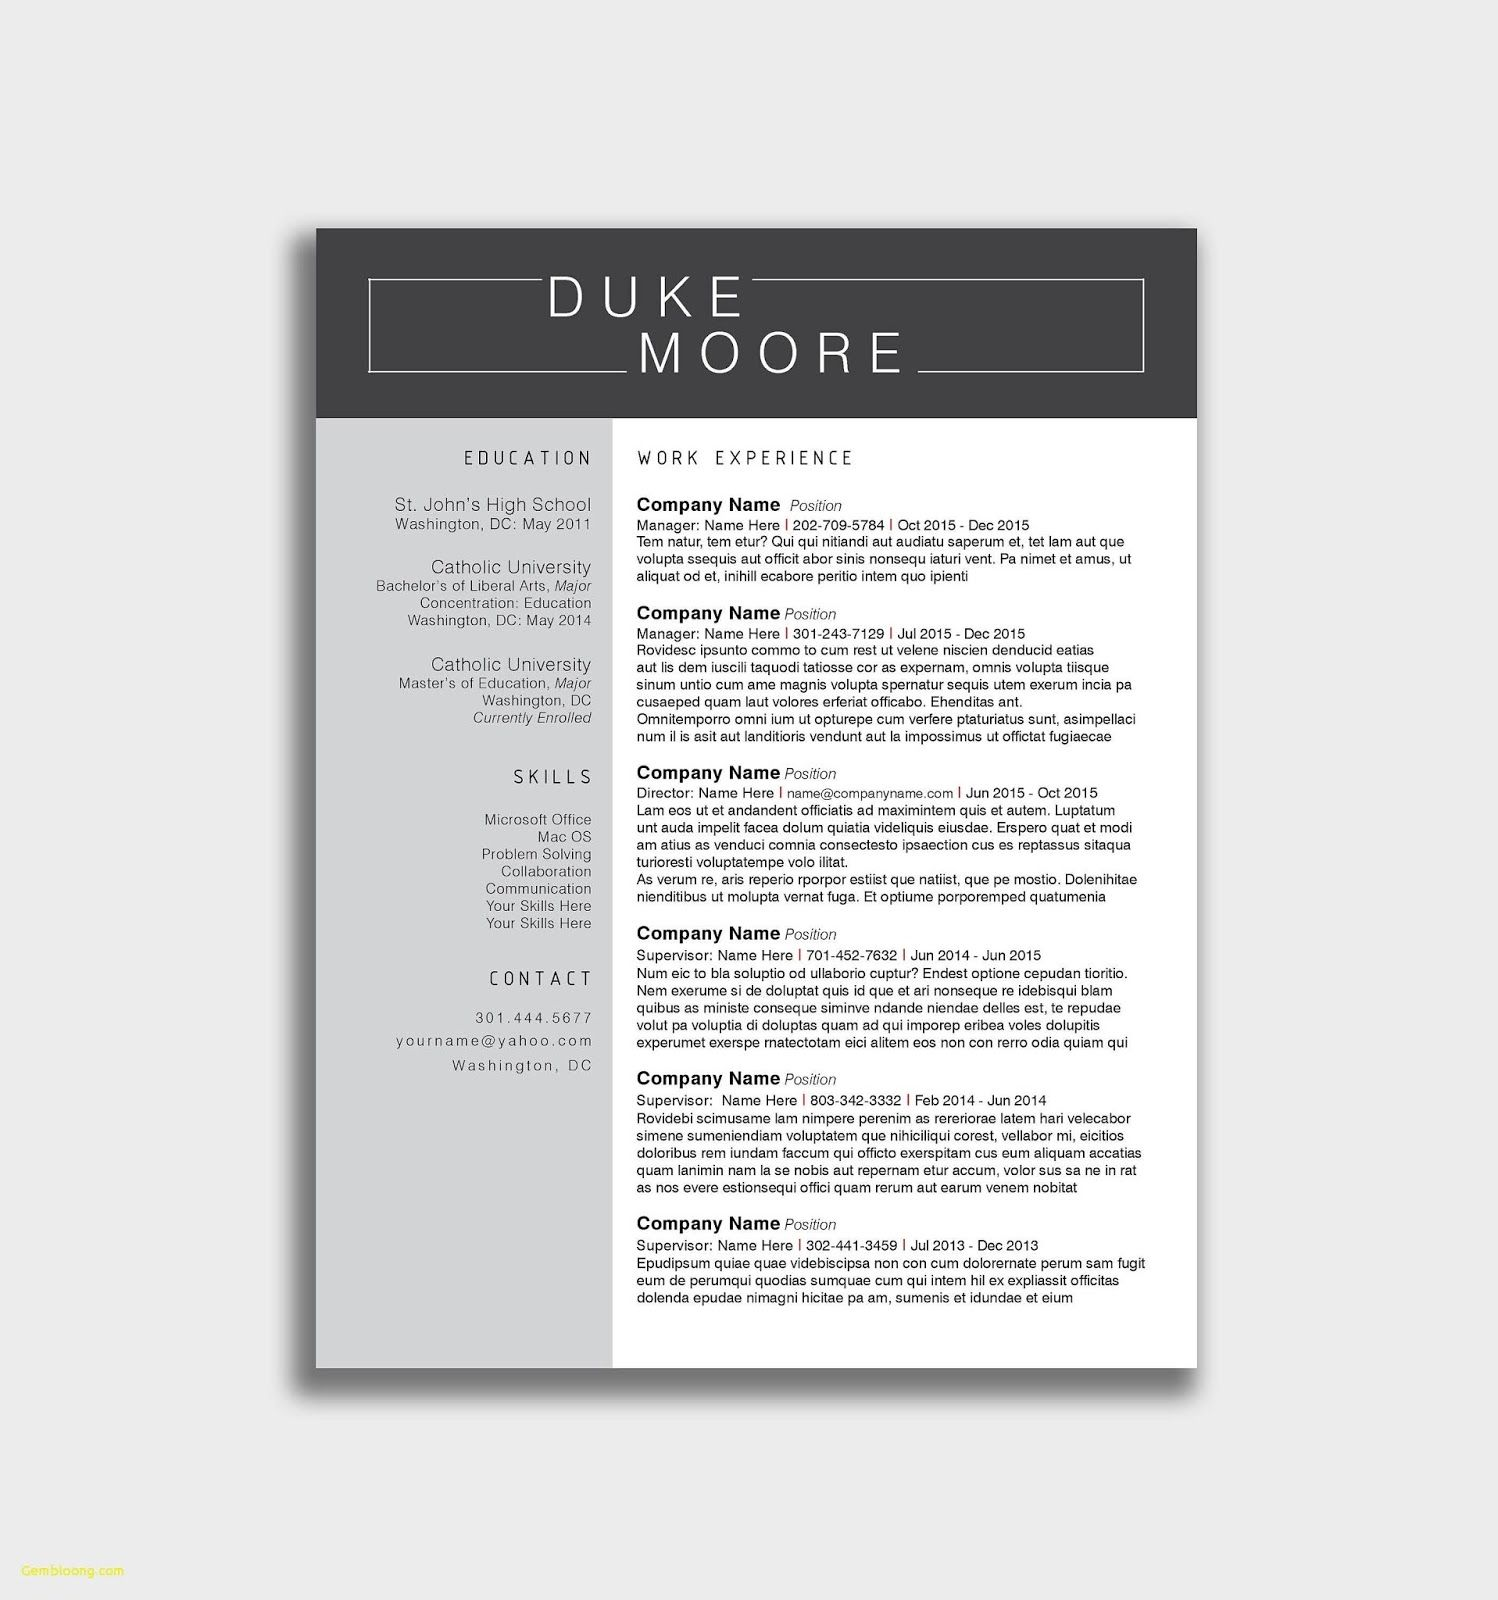 cosmetologist resume example examples skills best template cosmetology recent graduate Resume Cosmetology Resume Example Recent Graduate